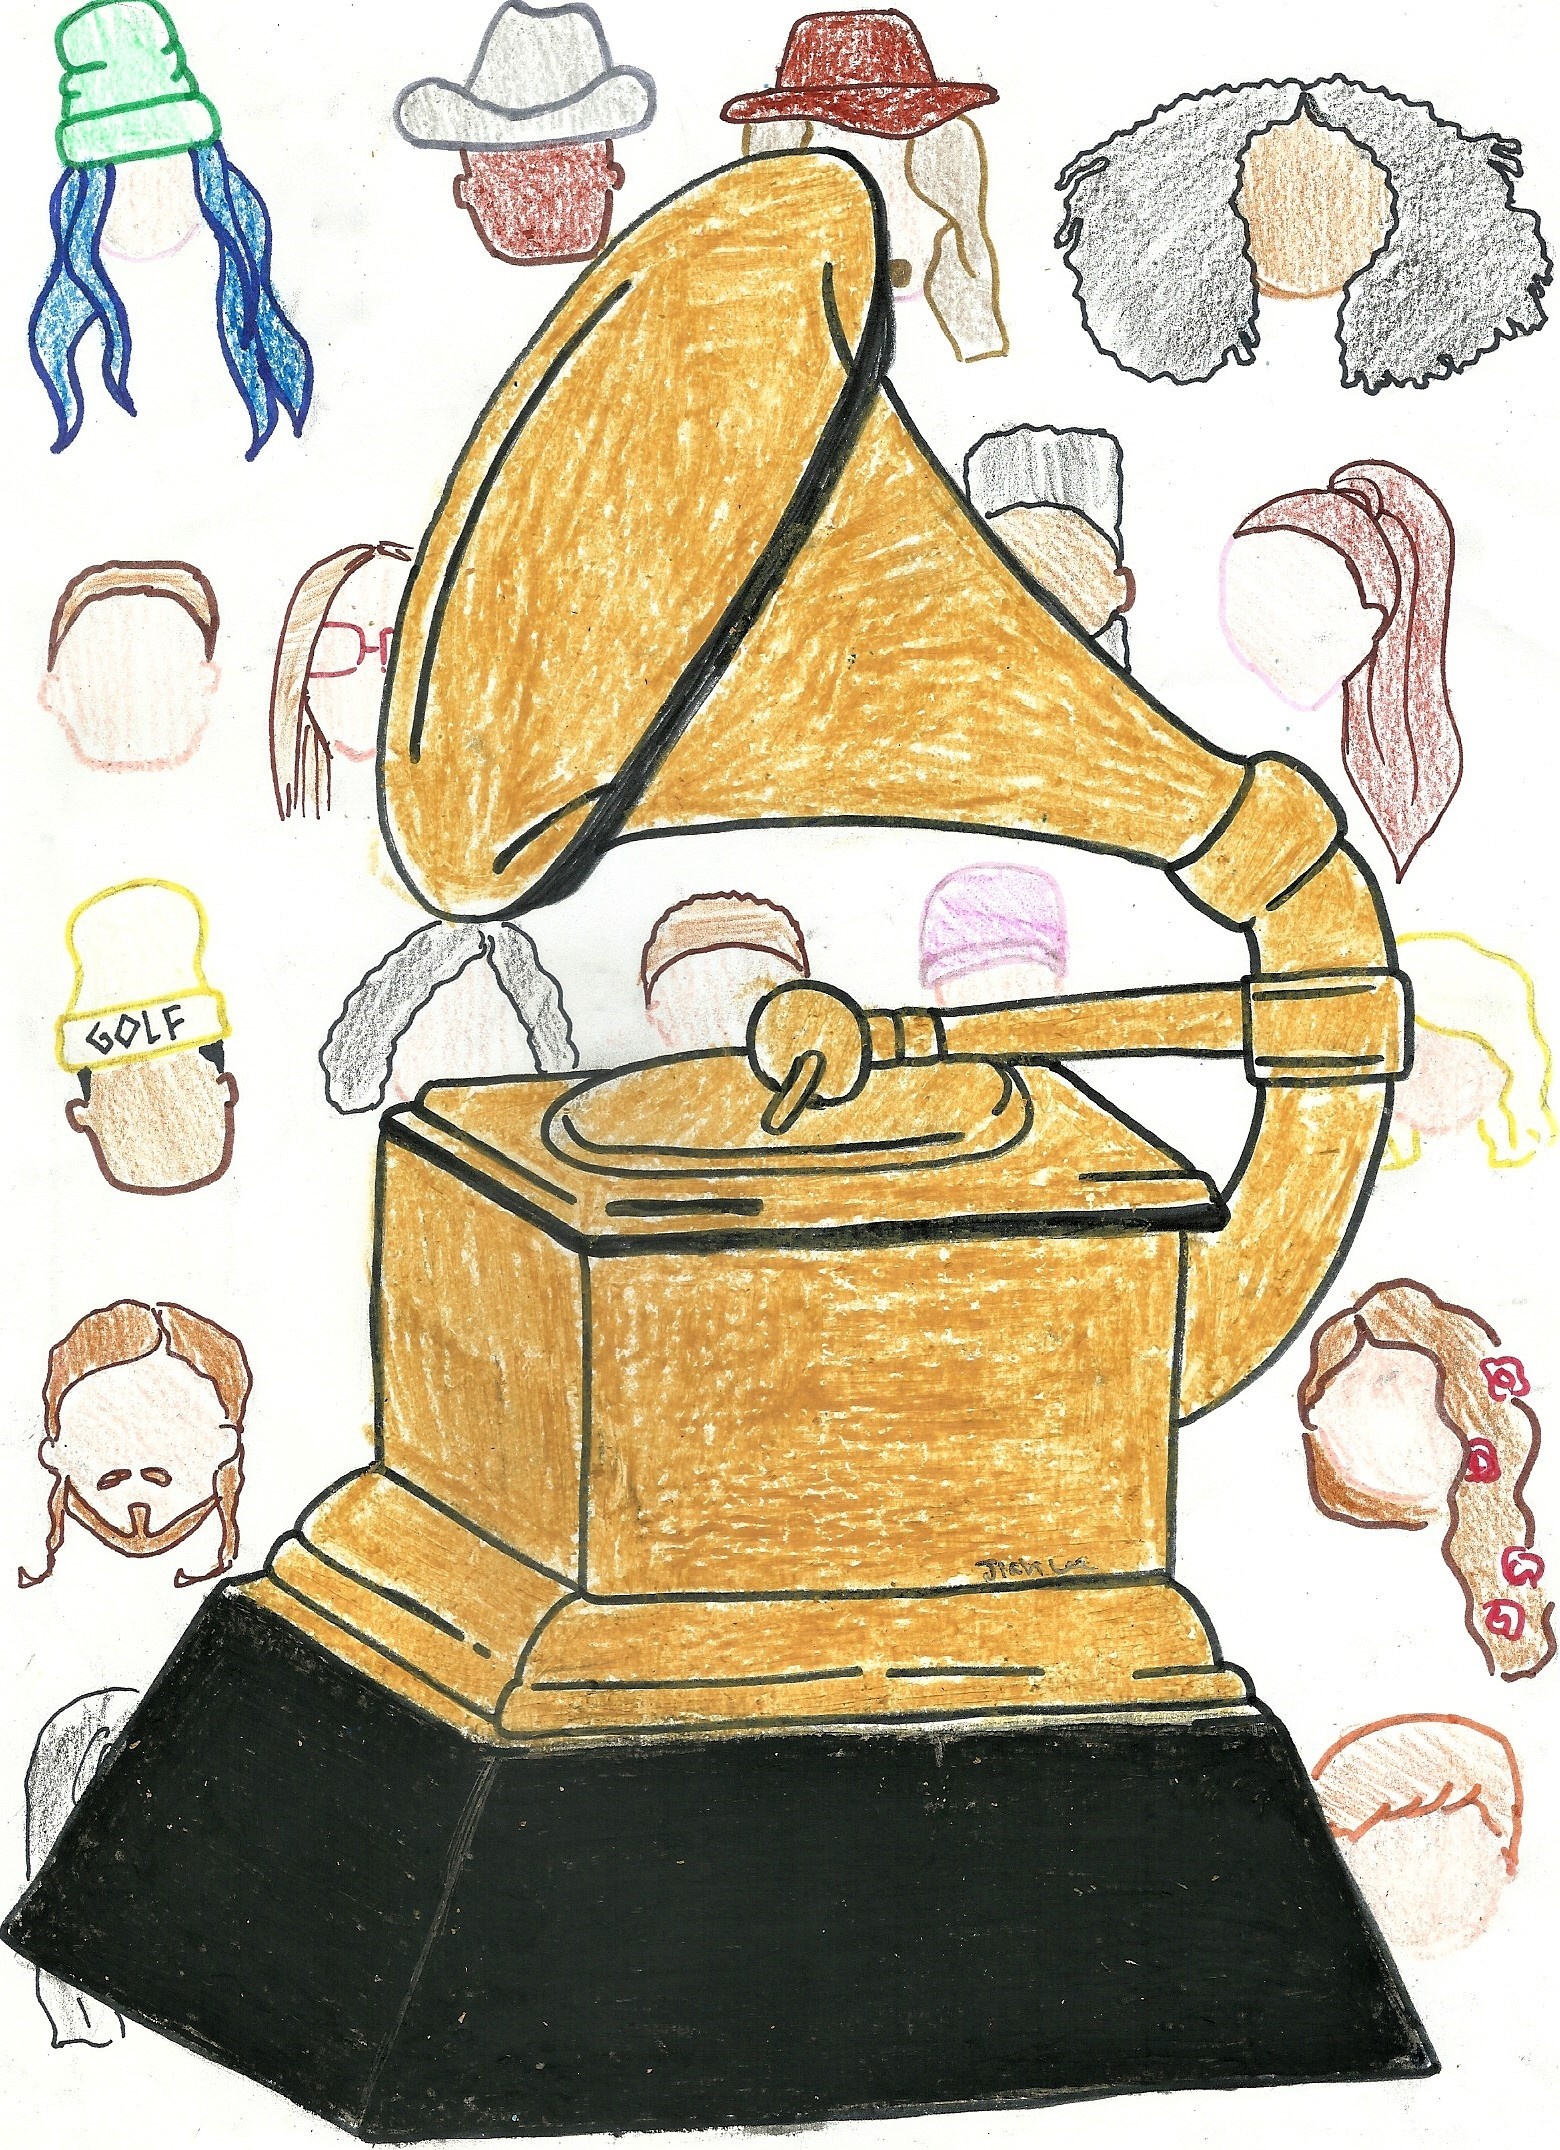 Grammy Awards Recap